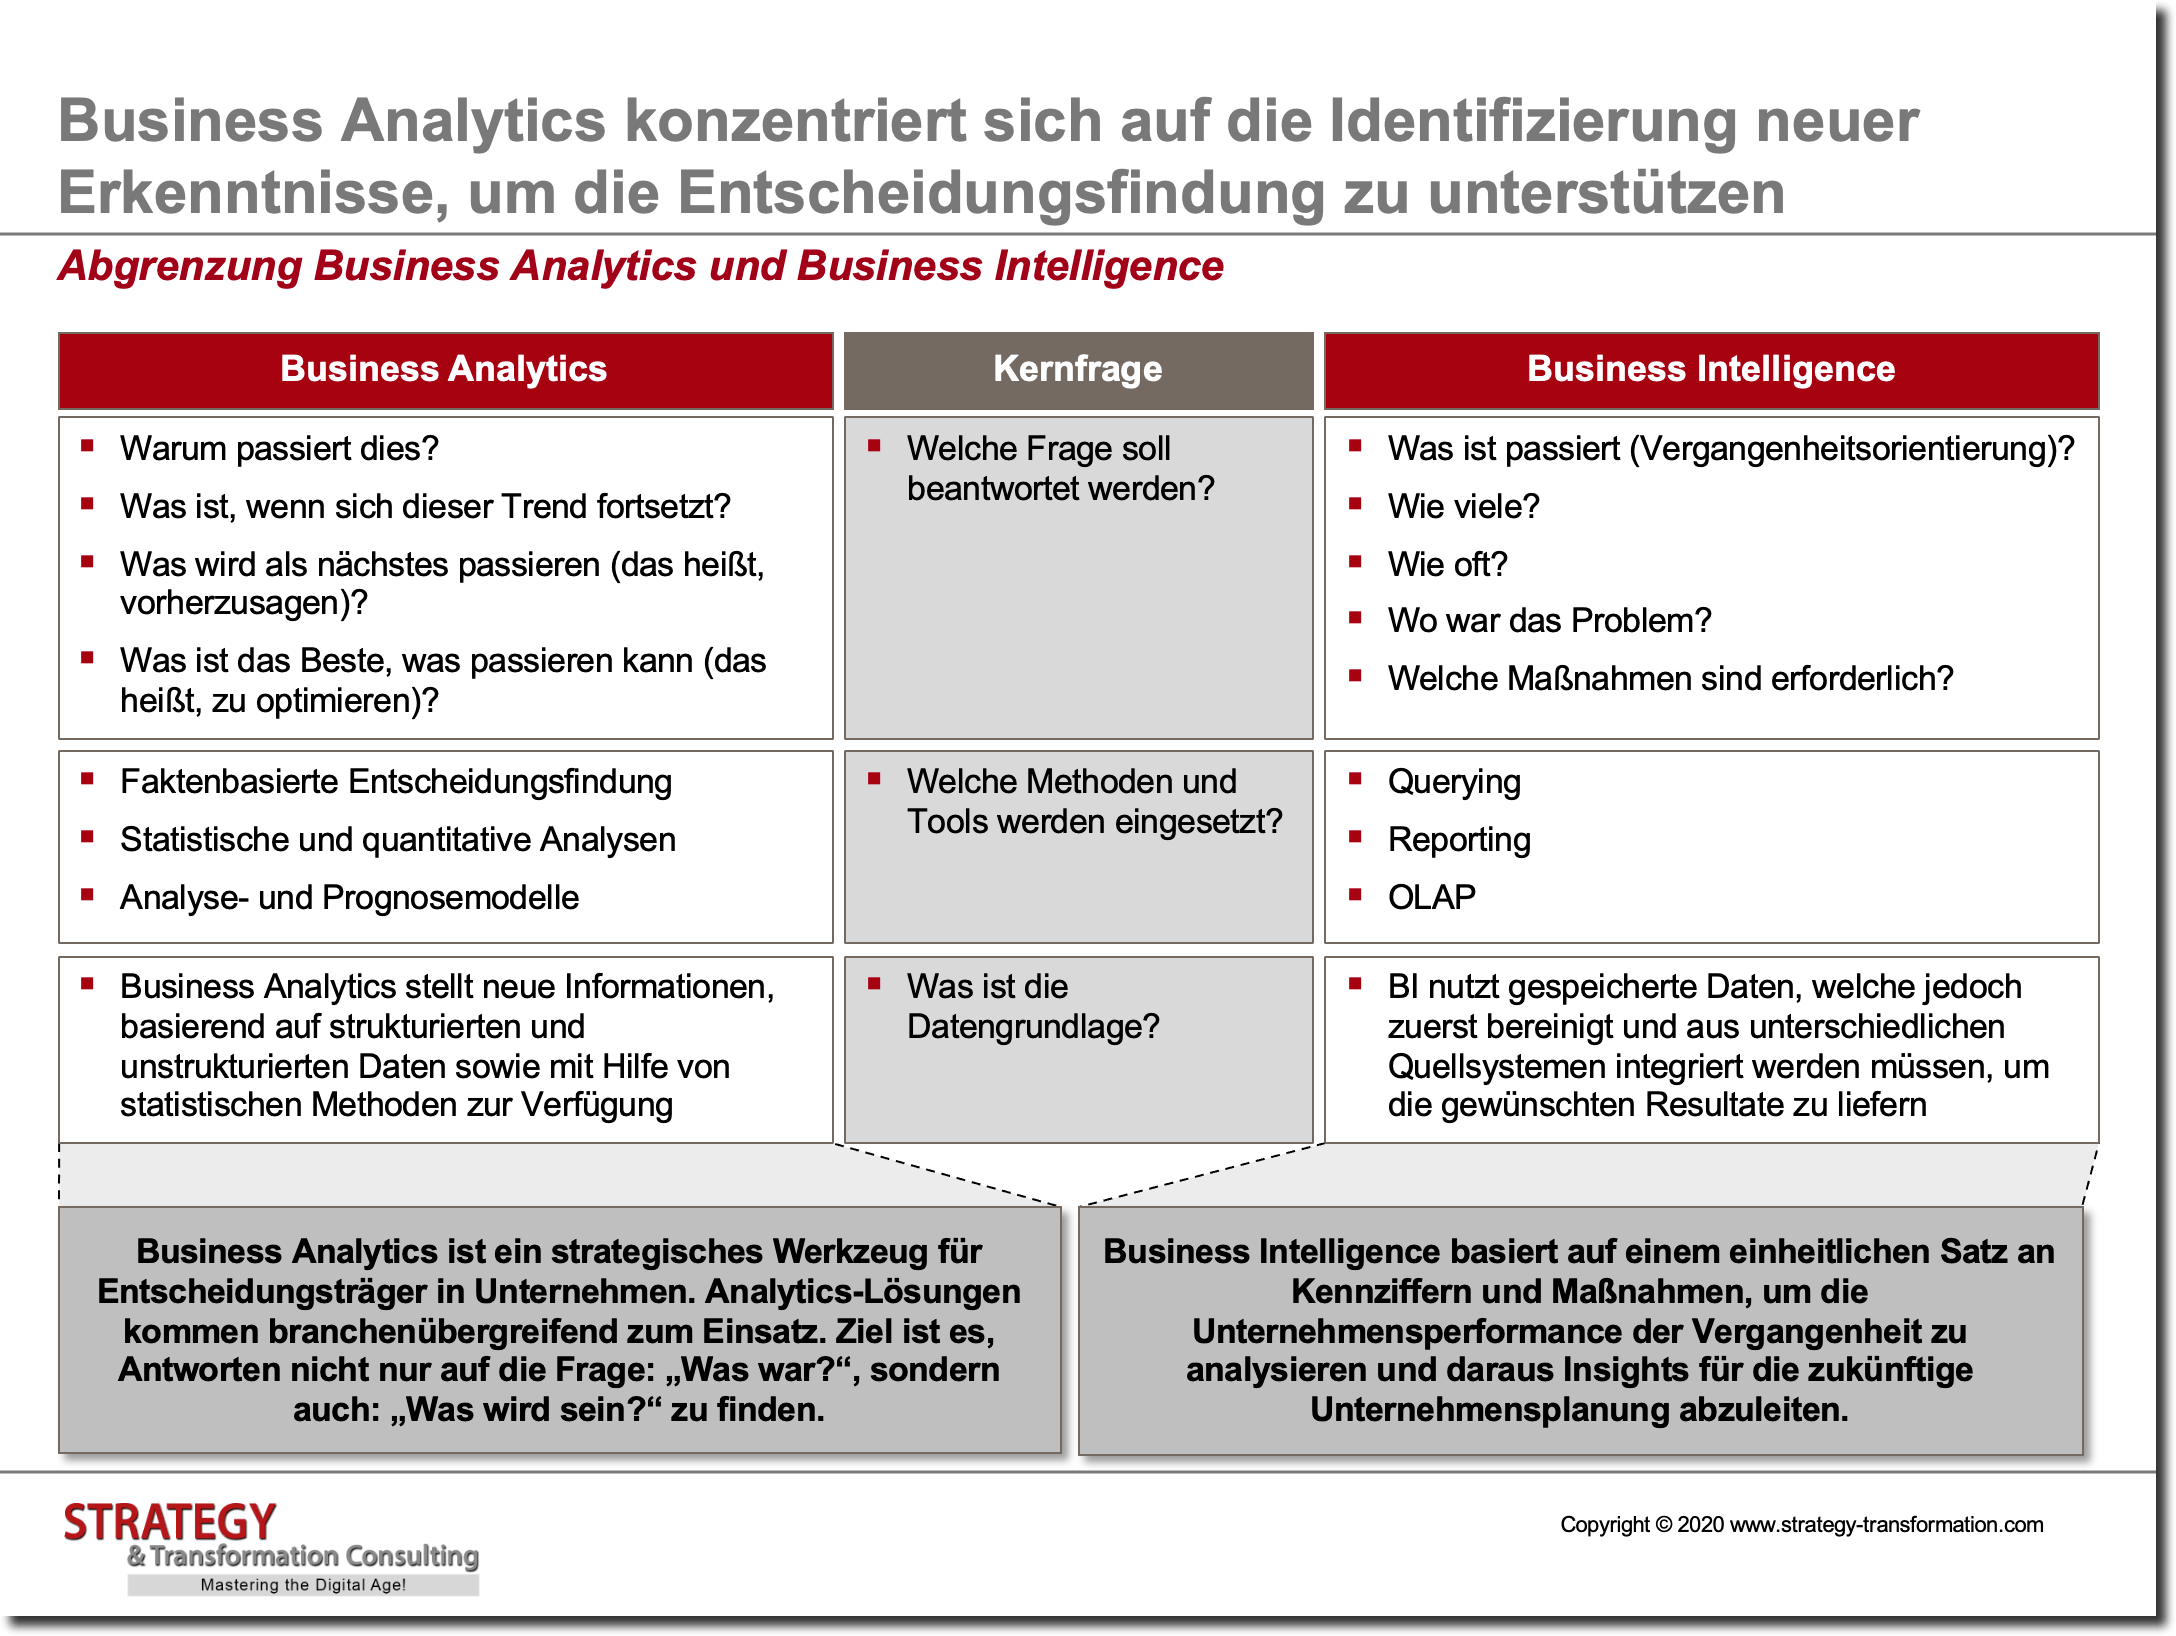 Abgrenzung Business Analytics und Business Intelligence